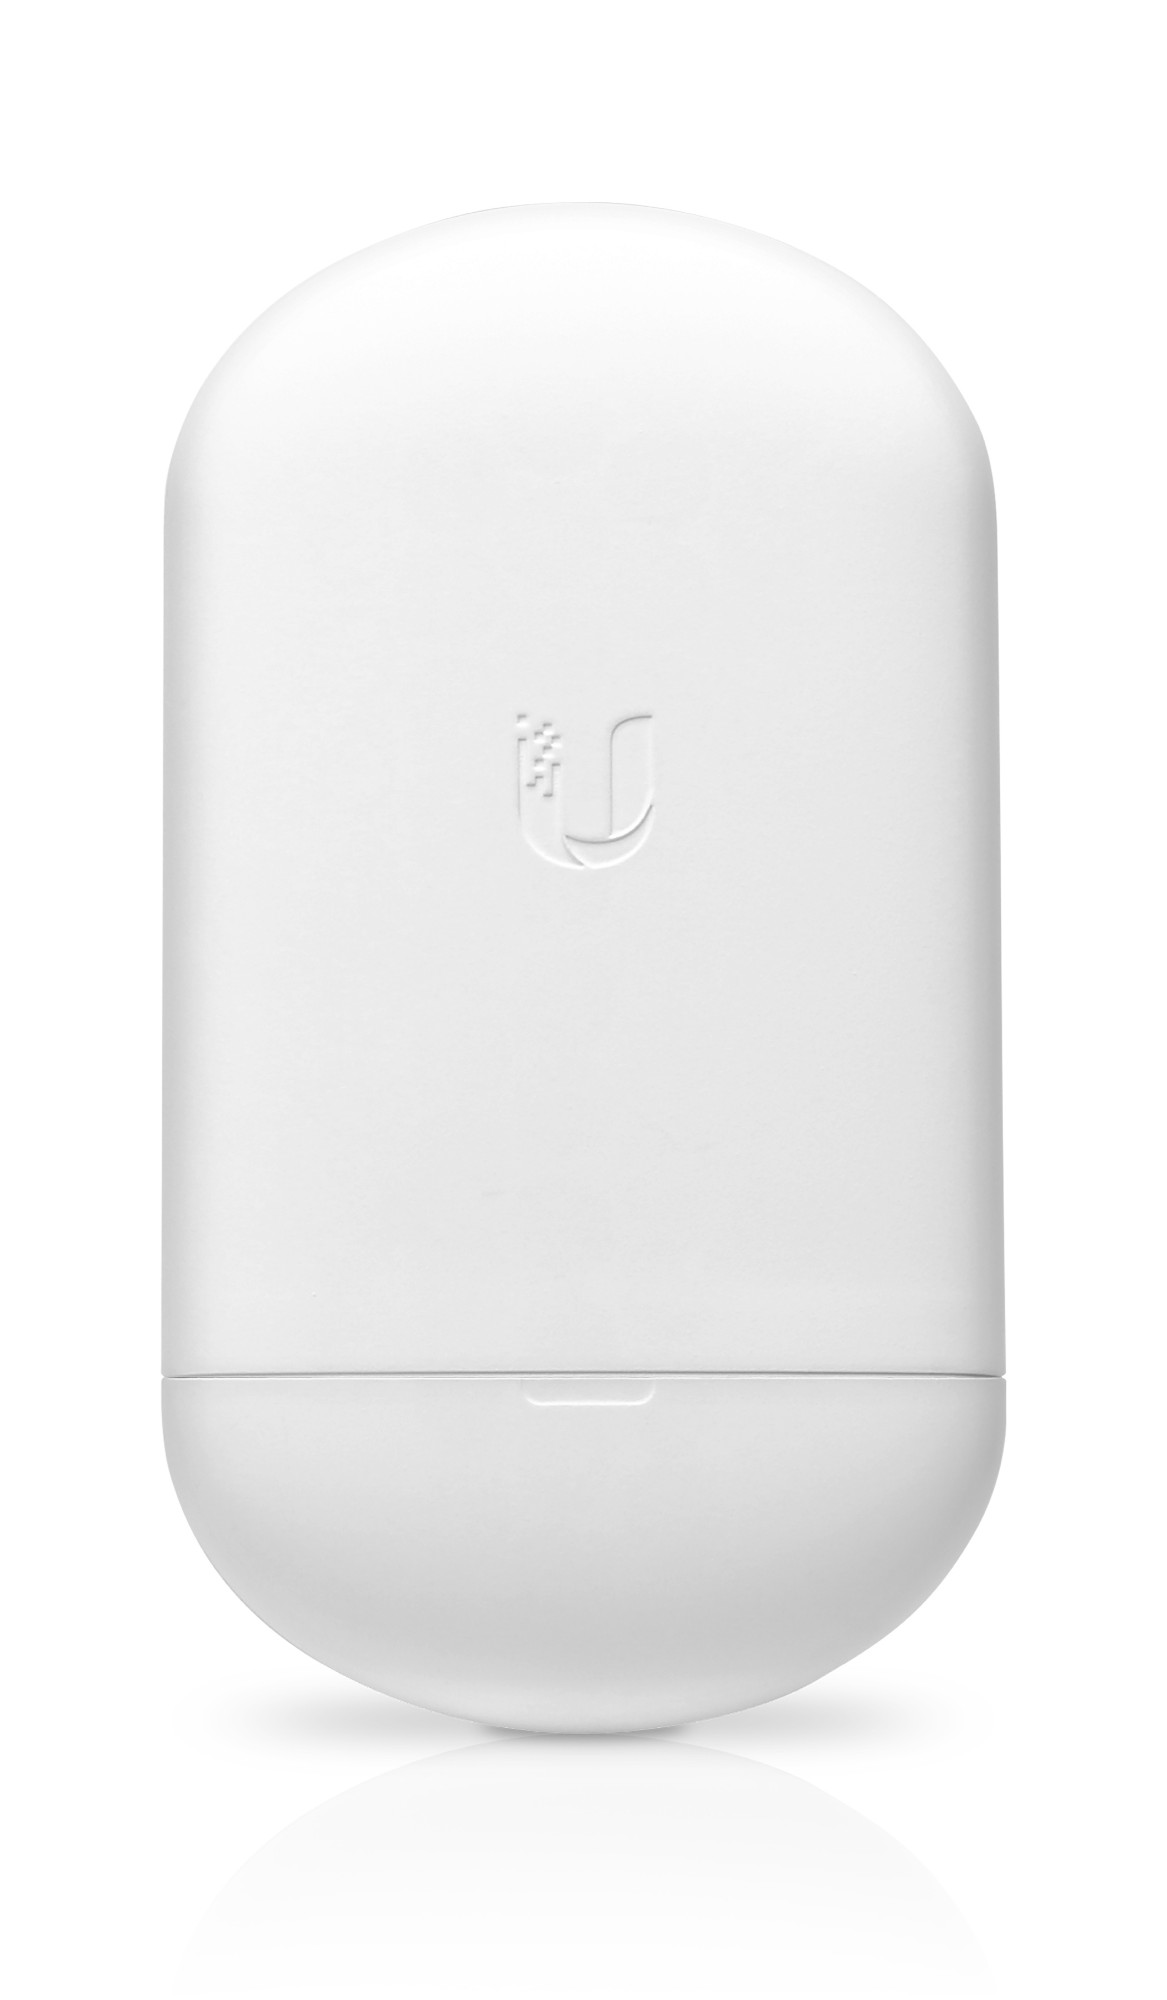 Ubiquiti Networks NanoStation 5AC Loco WLAN access point 1000 Mbit/s Power over Ethernet (PoE) White